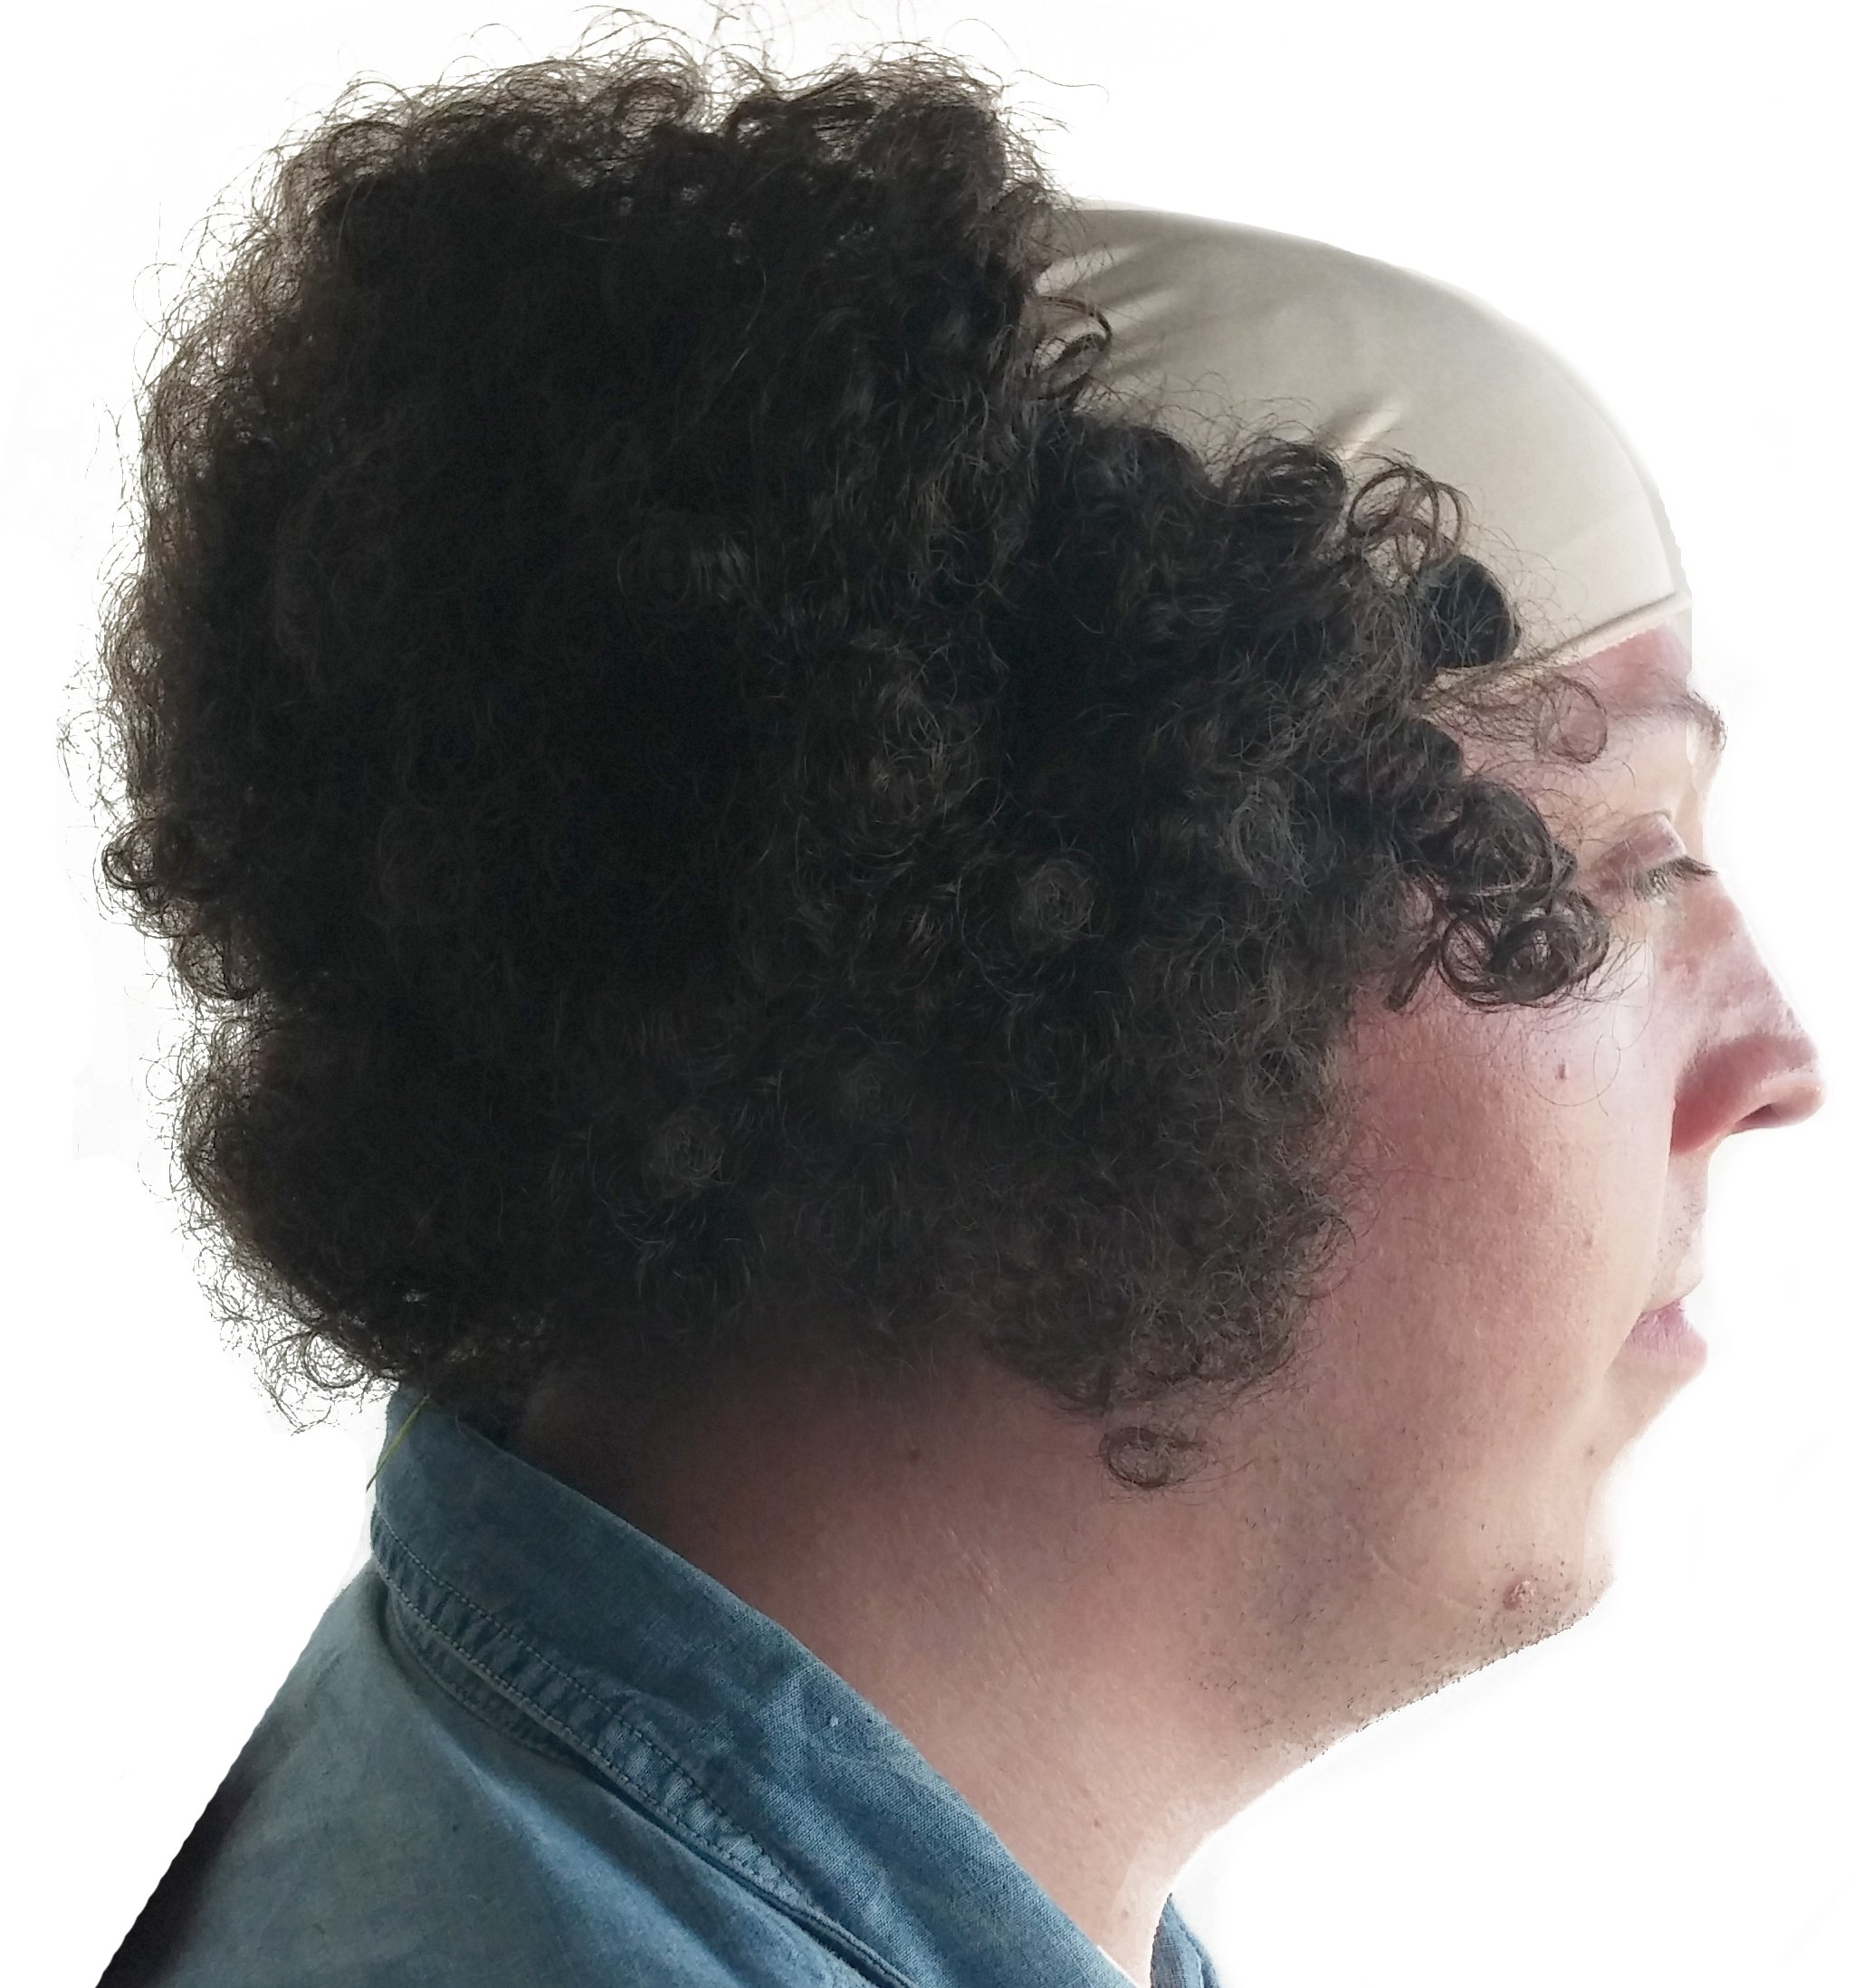 Larry Three Stooges Wig Bald Curly Brown Wig for Men by City Costume Wigs (Image #2)